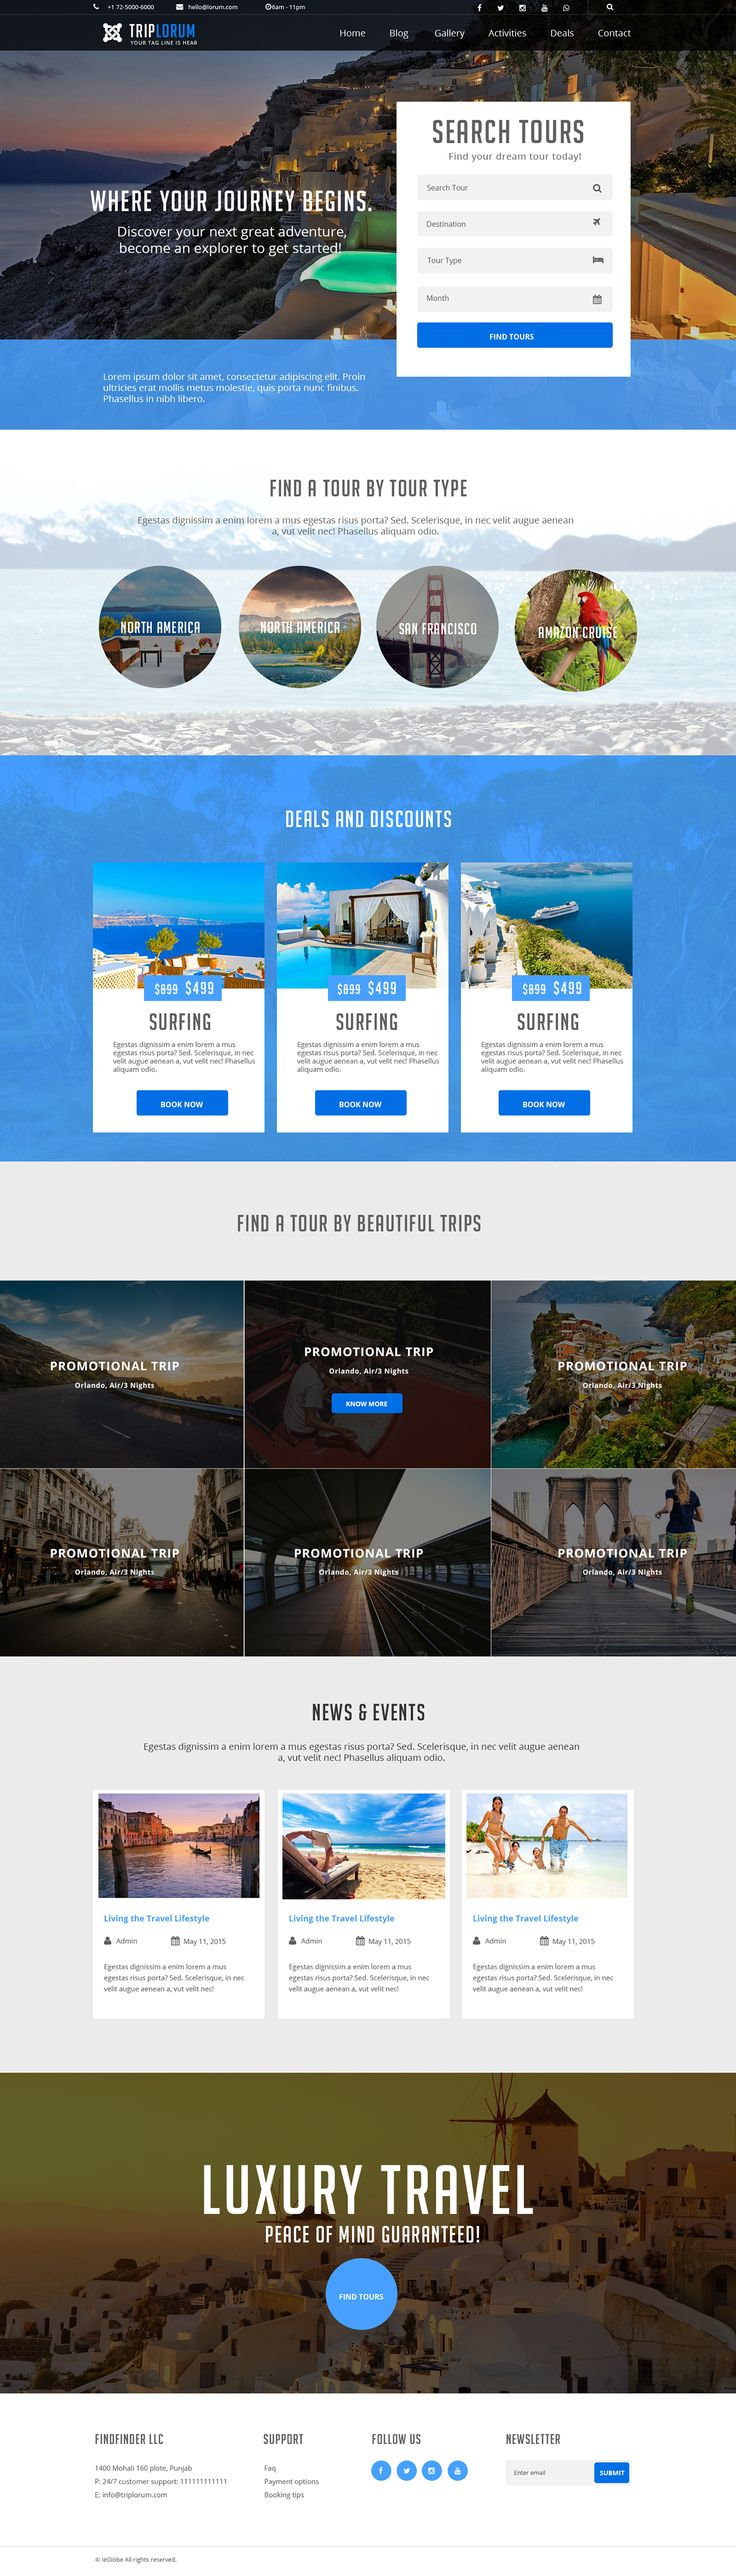 This is a #tours and #travels #website #design developed by #Wodpraxs's team. To hire our services contact us at service@wordpraxs.com or Skype: service.wordpraxs